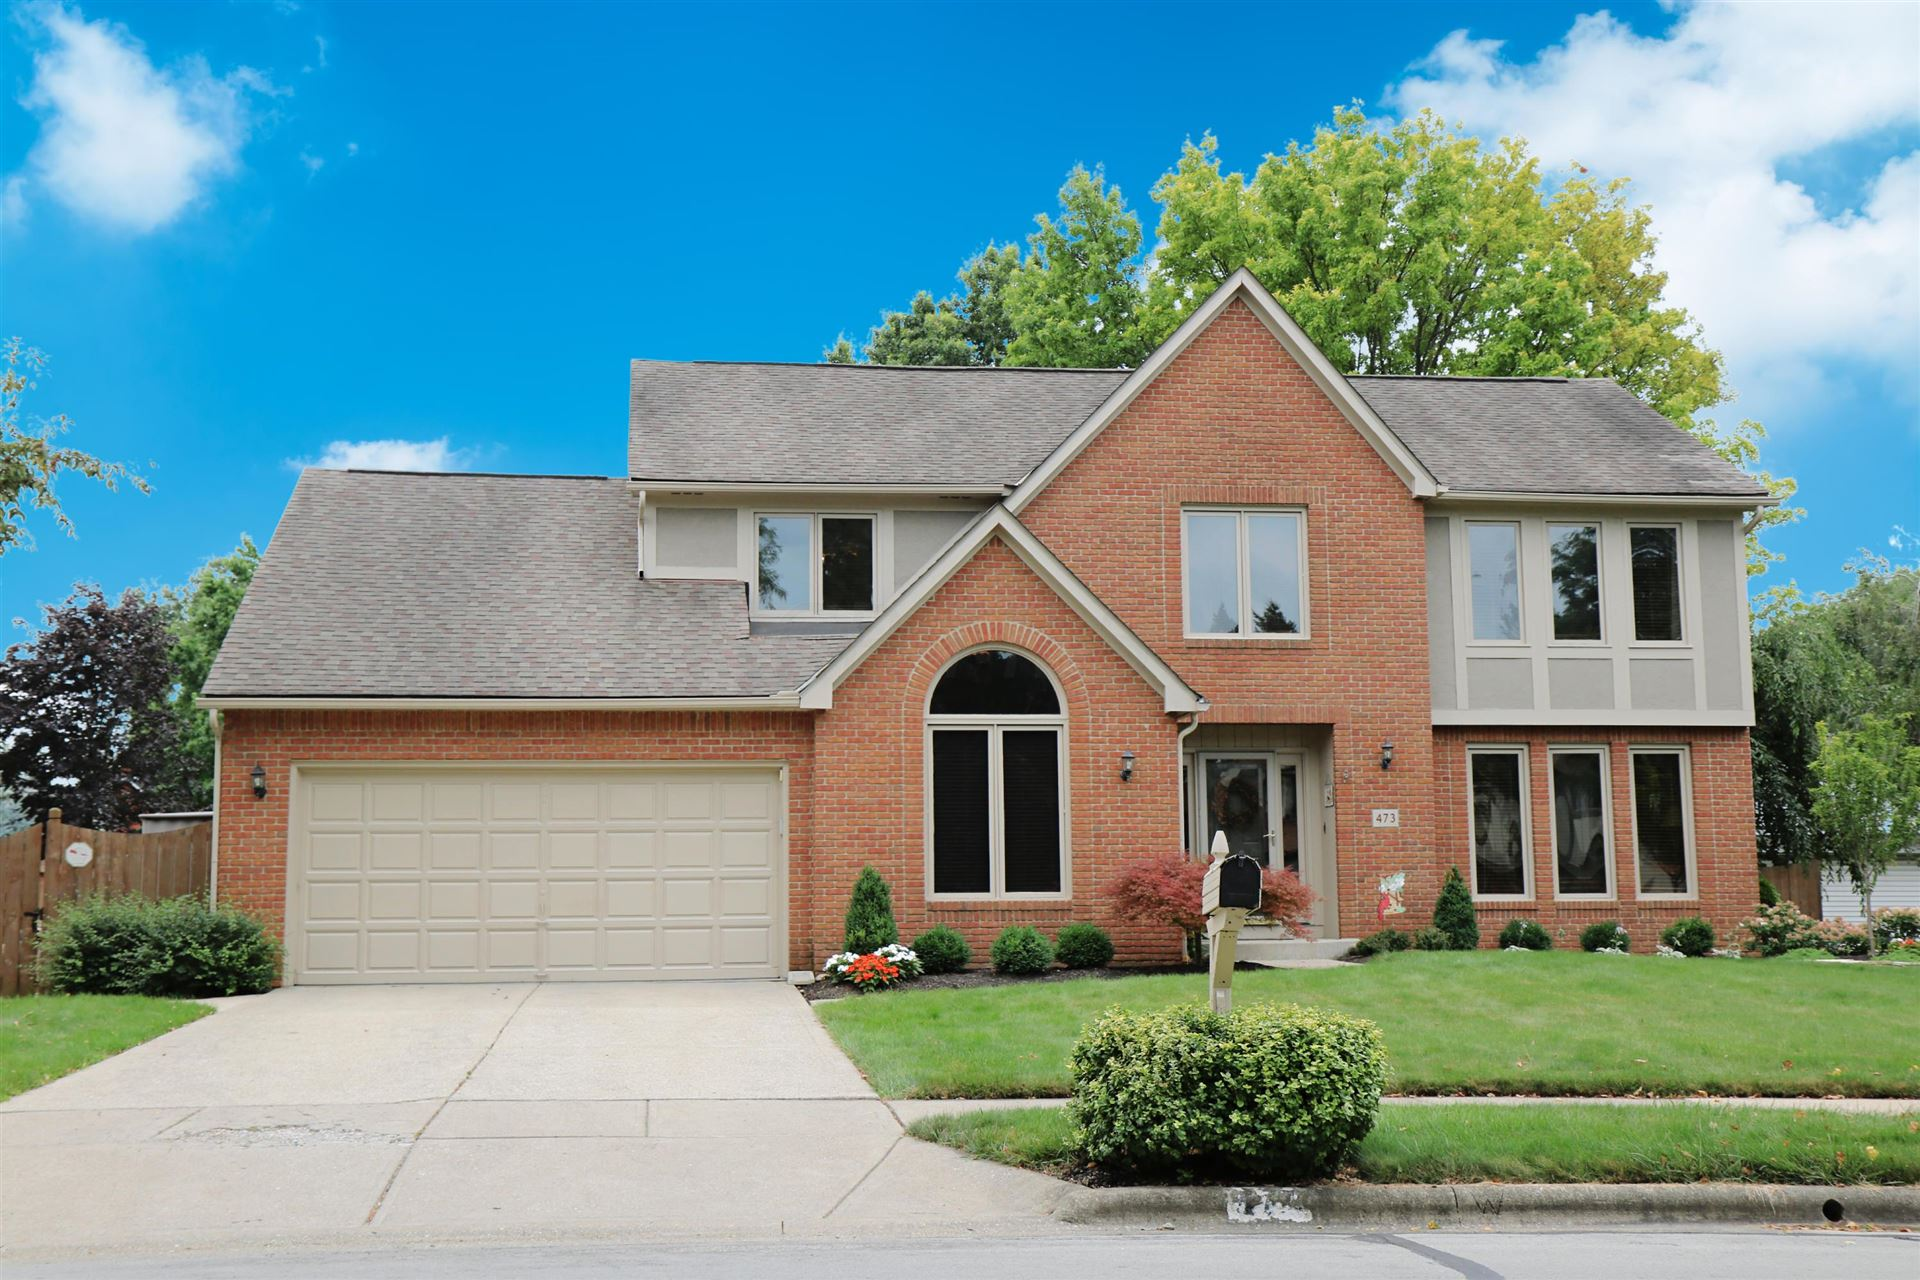 Photo for 473 Rockbourne Drive, Westerville, OH 43082 (MLS # 221029567)